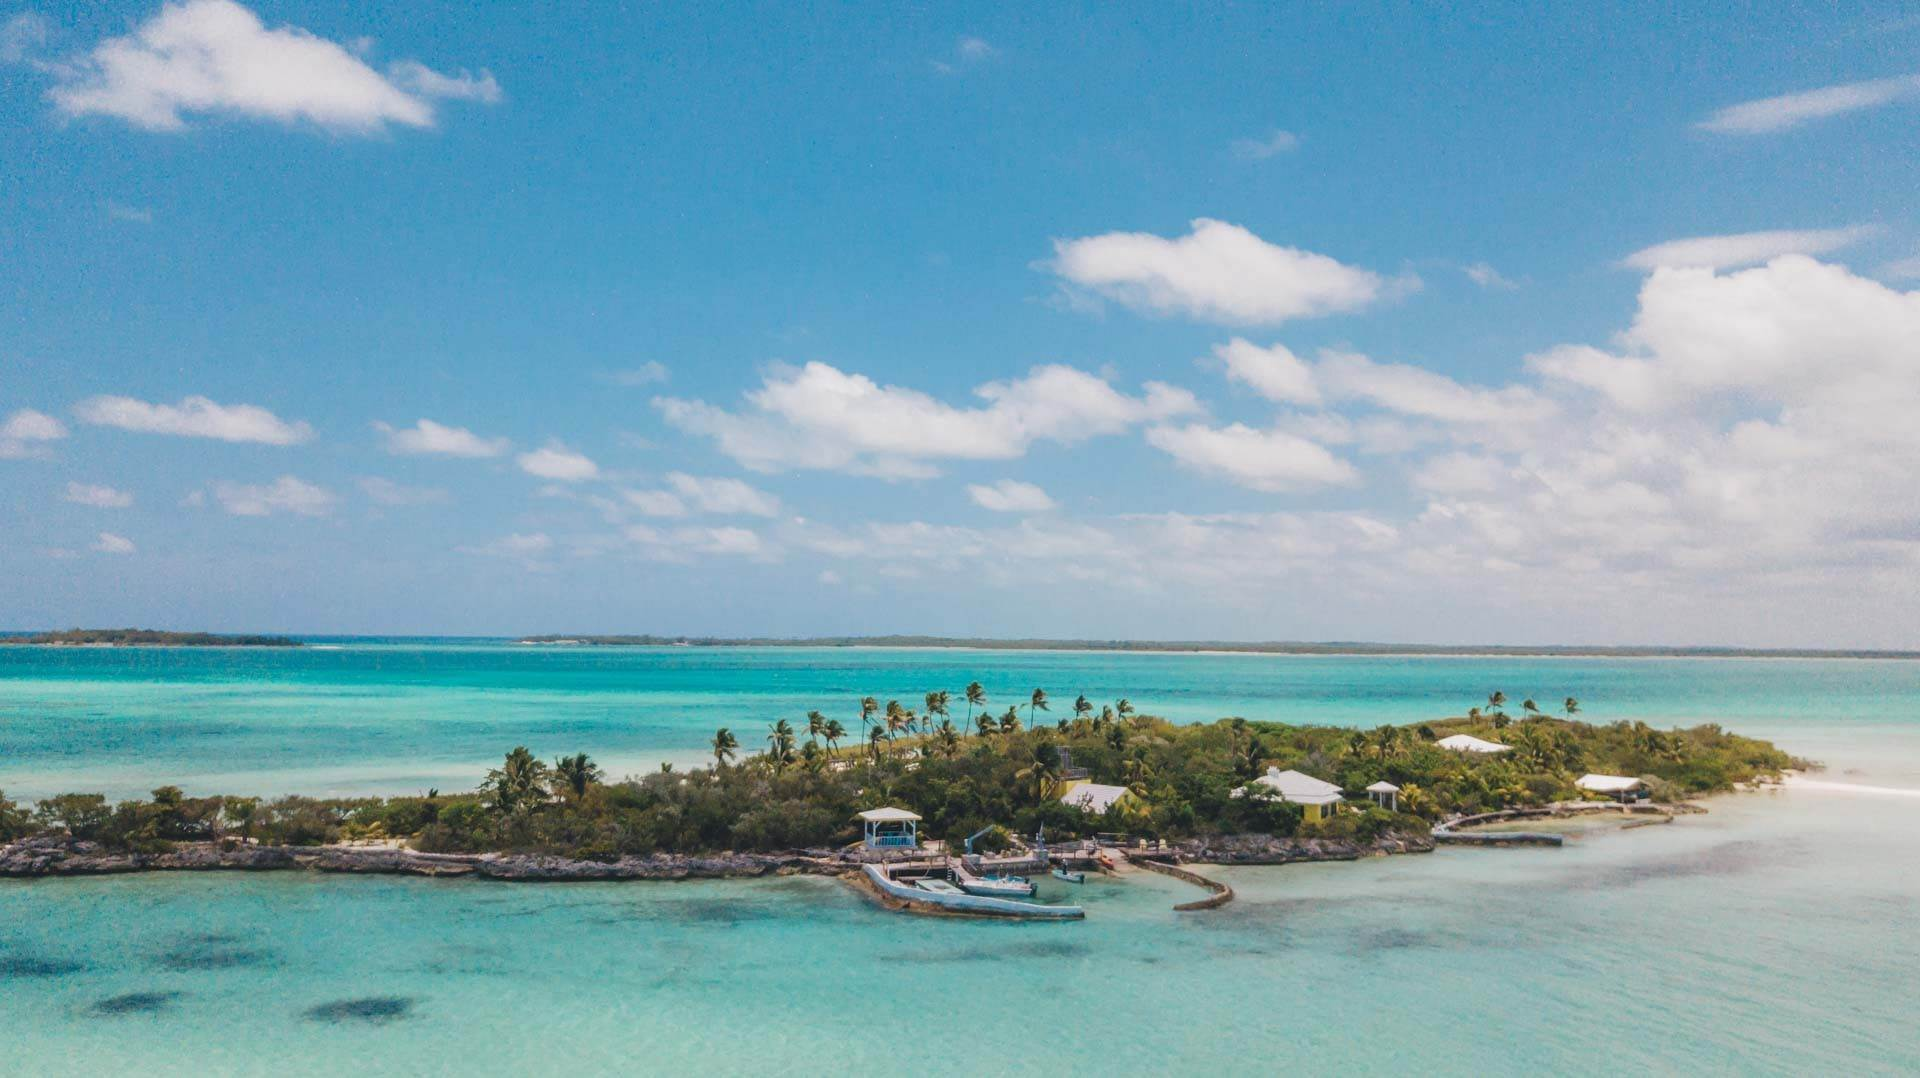 Private Islands for Sale at Victoria Point Cays, Private Island - MLS 41704 Mangrove Cay, Andros, Bahamas